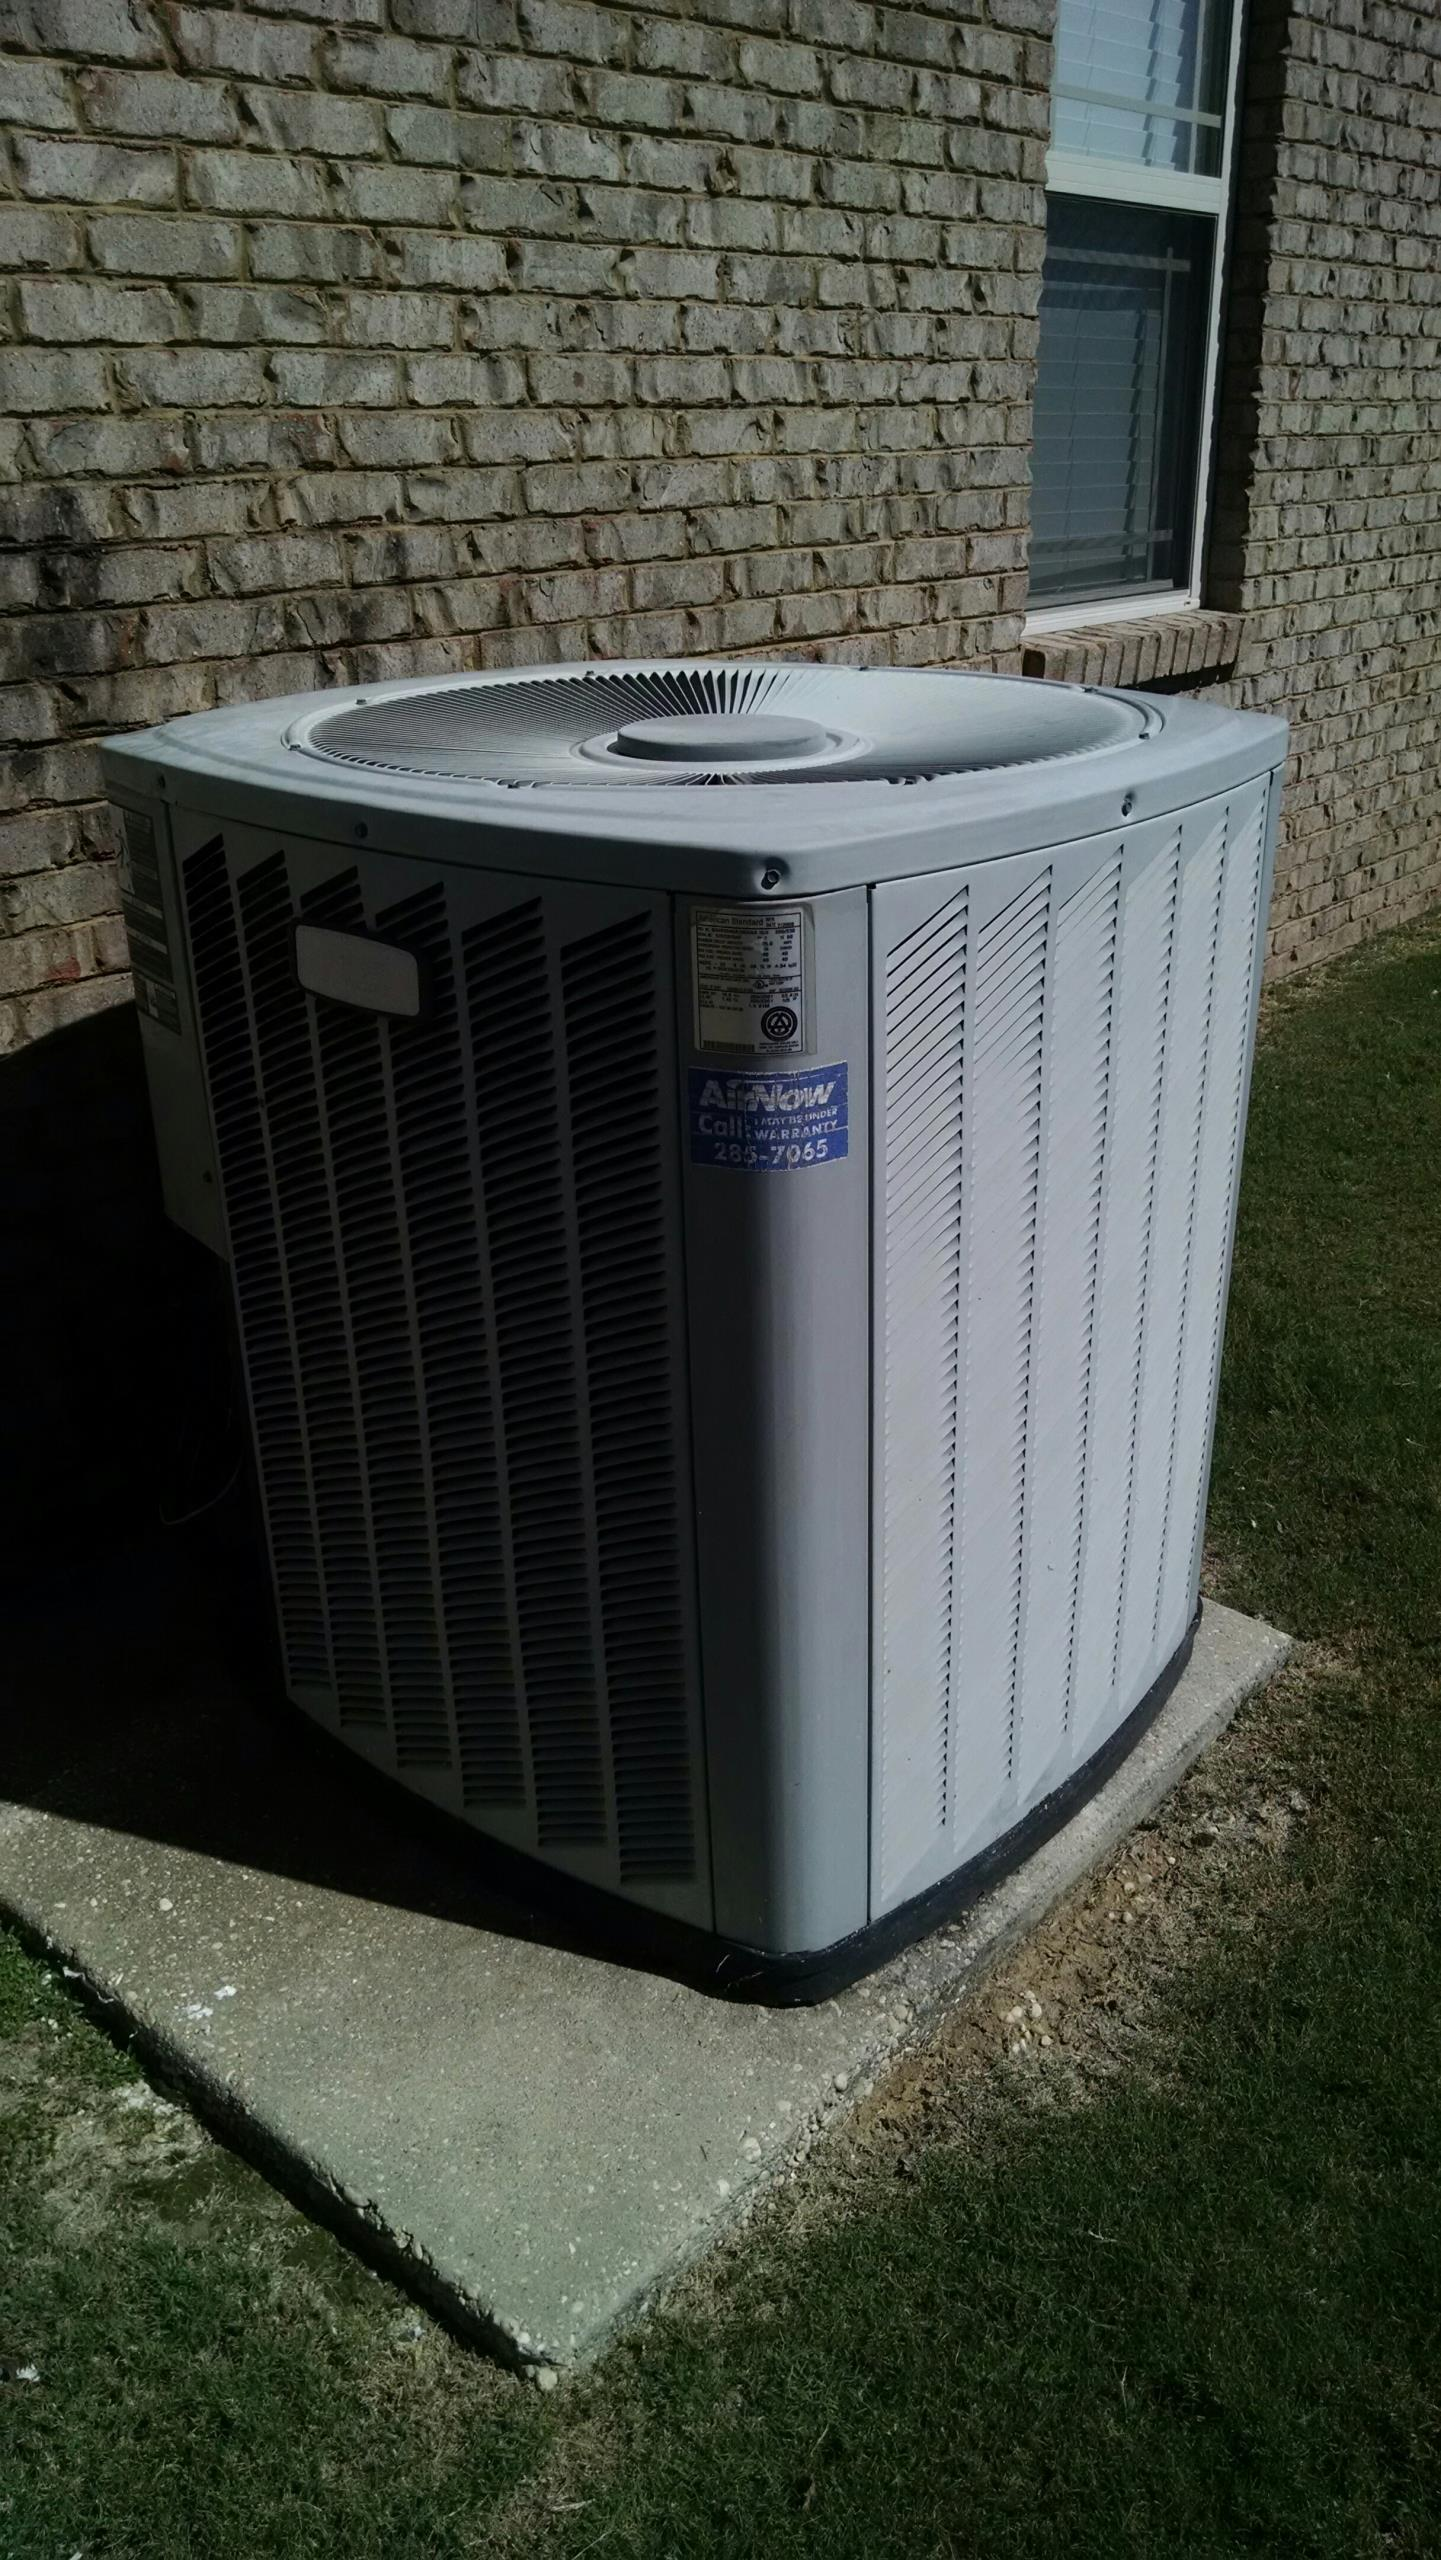 Deatsville, AL - Estimate to replace 14 yr old American Standard R22 heat pump air conditioner.